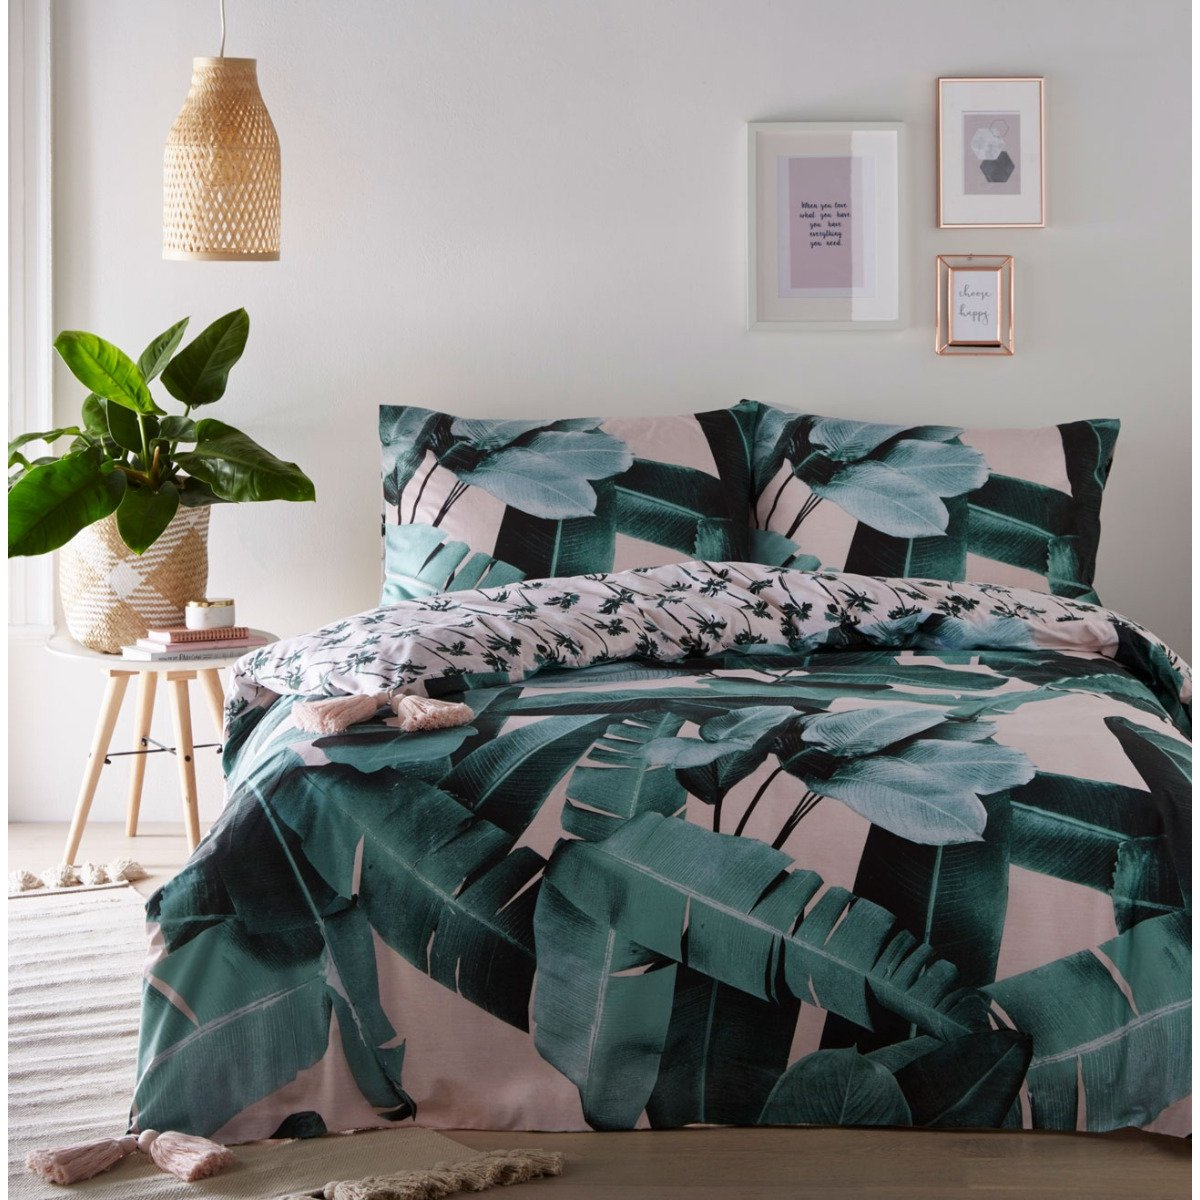 Tropical Palm Bedding - Reversible Duvet Cover and Pillowcase Set